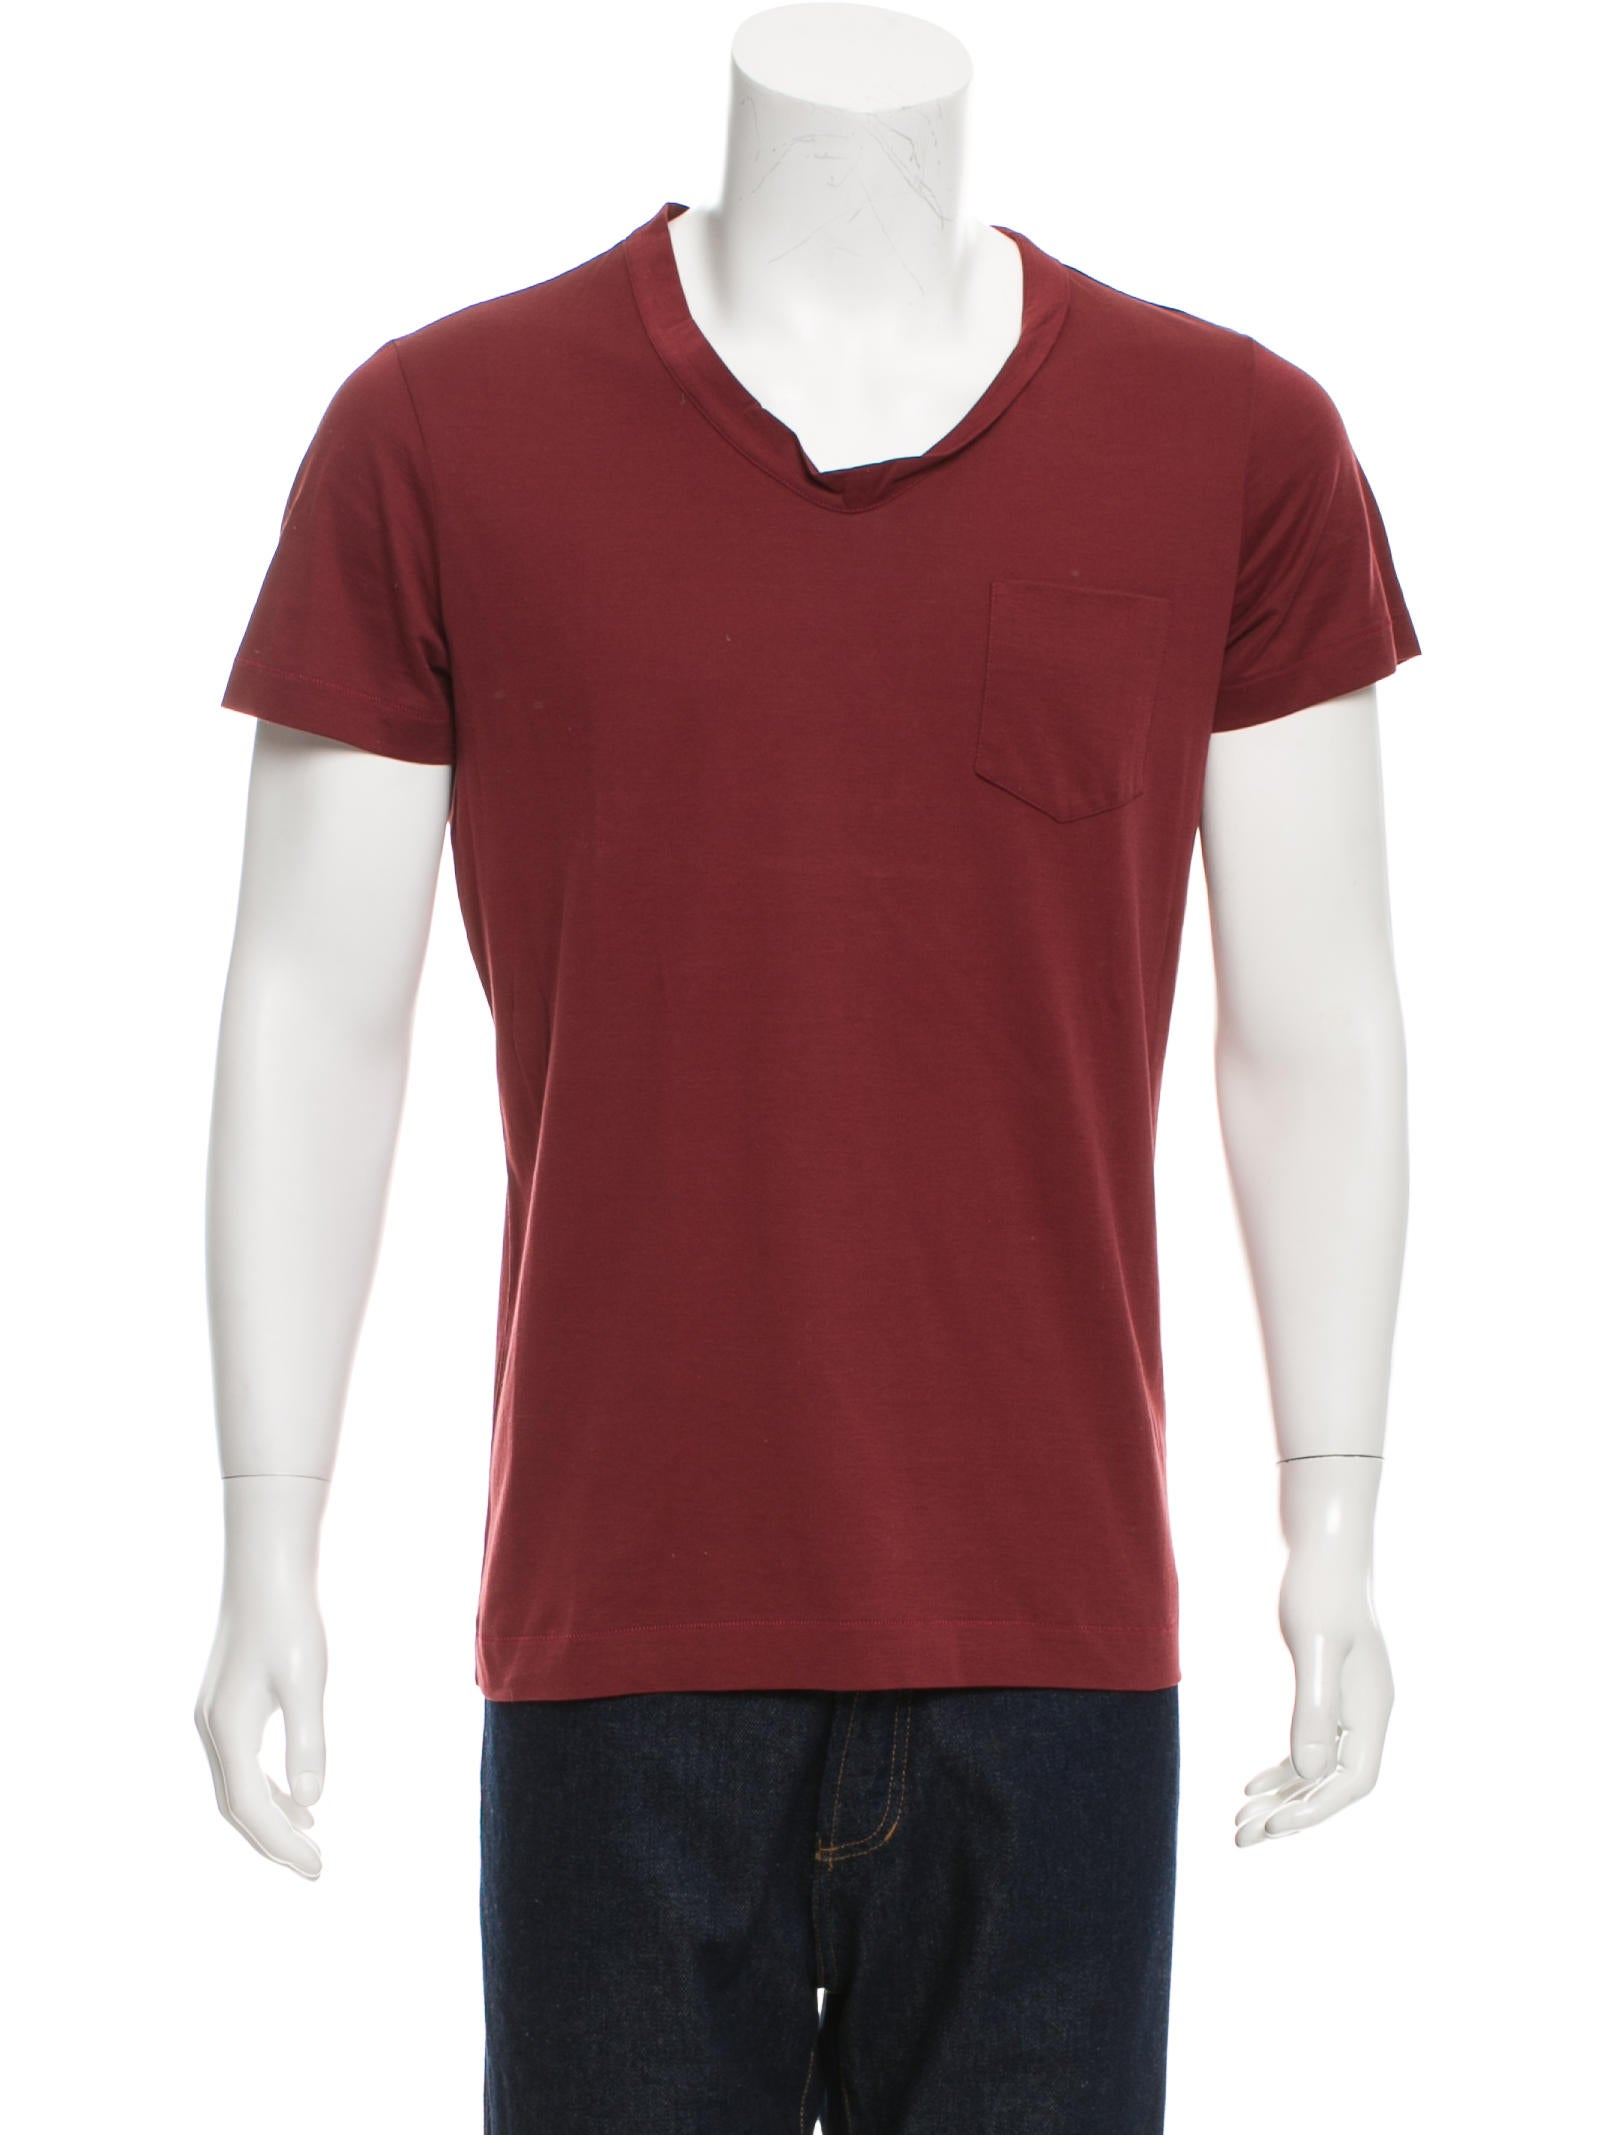 Bottega veneta scoop neck pocket t shirt clothing for Bottega veneta t shirt